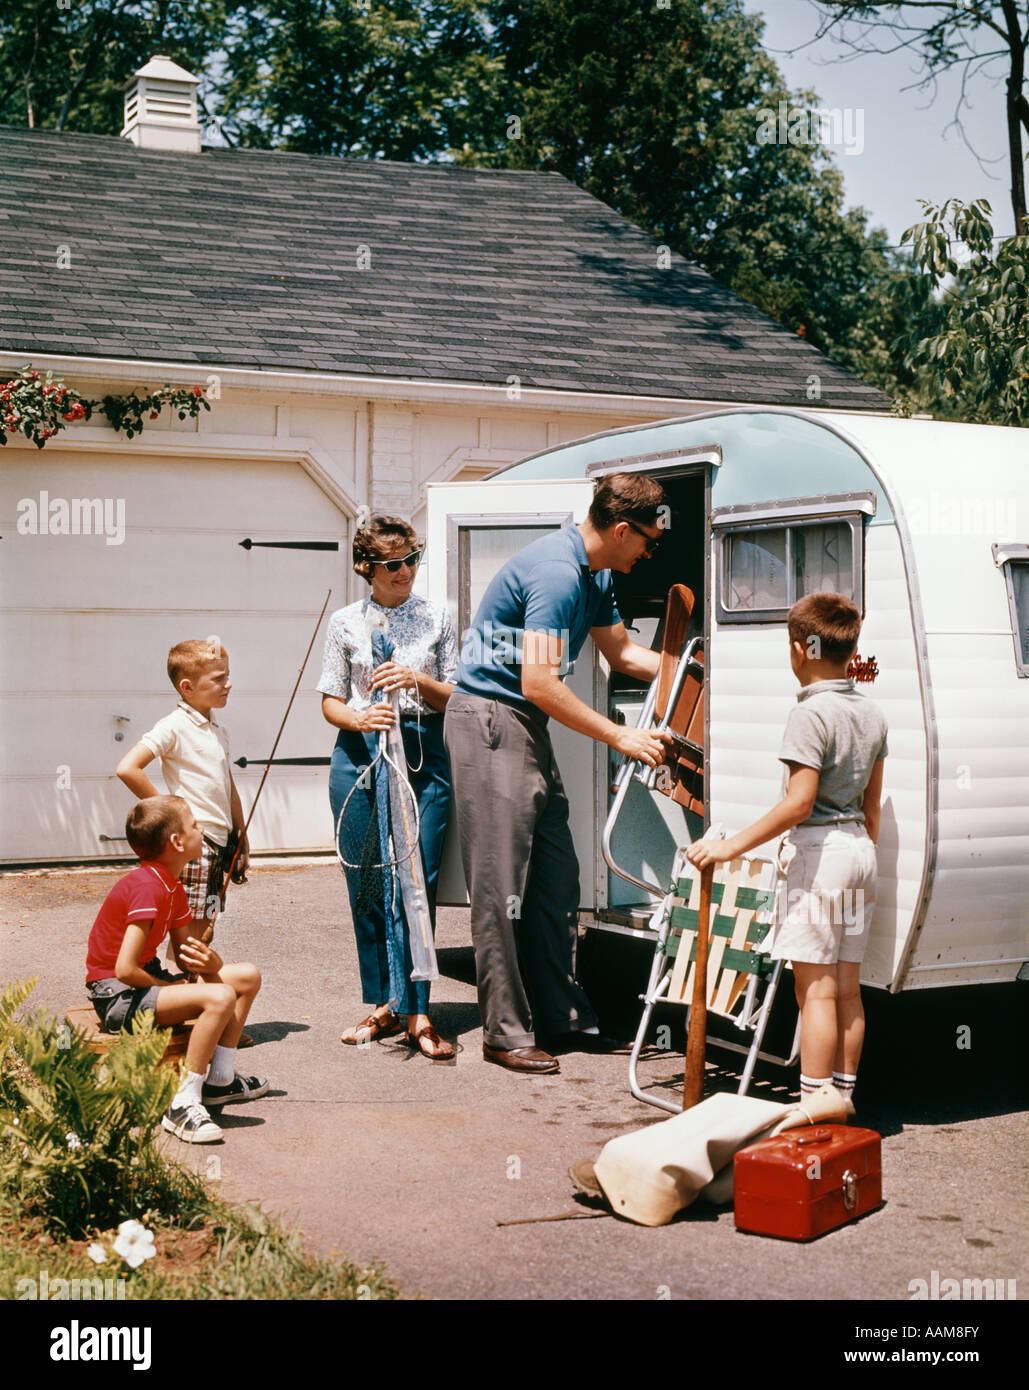 Camping 1960s Stock Photos Amp Camping 1960s Stock Images